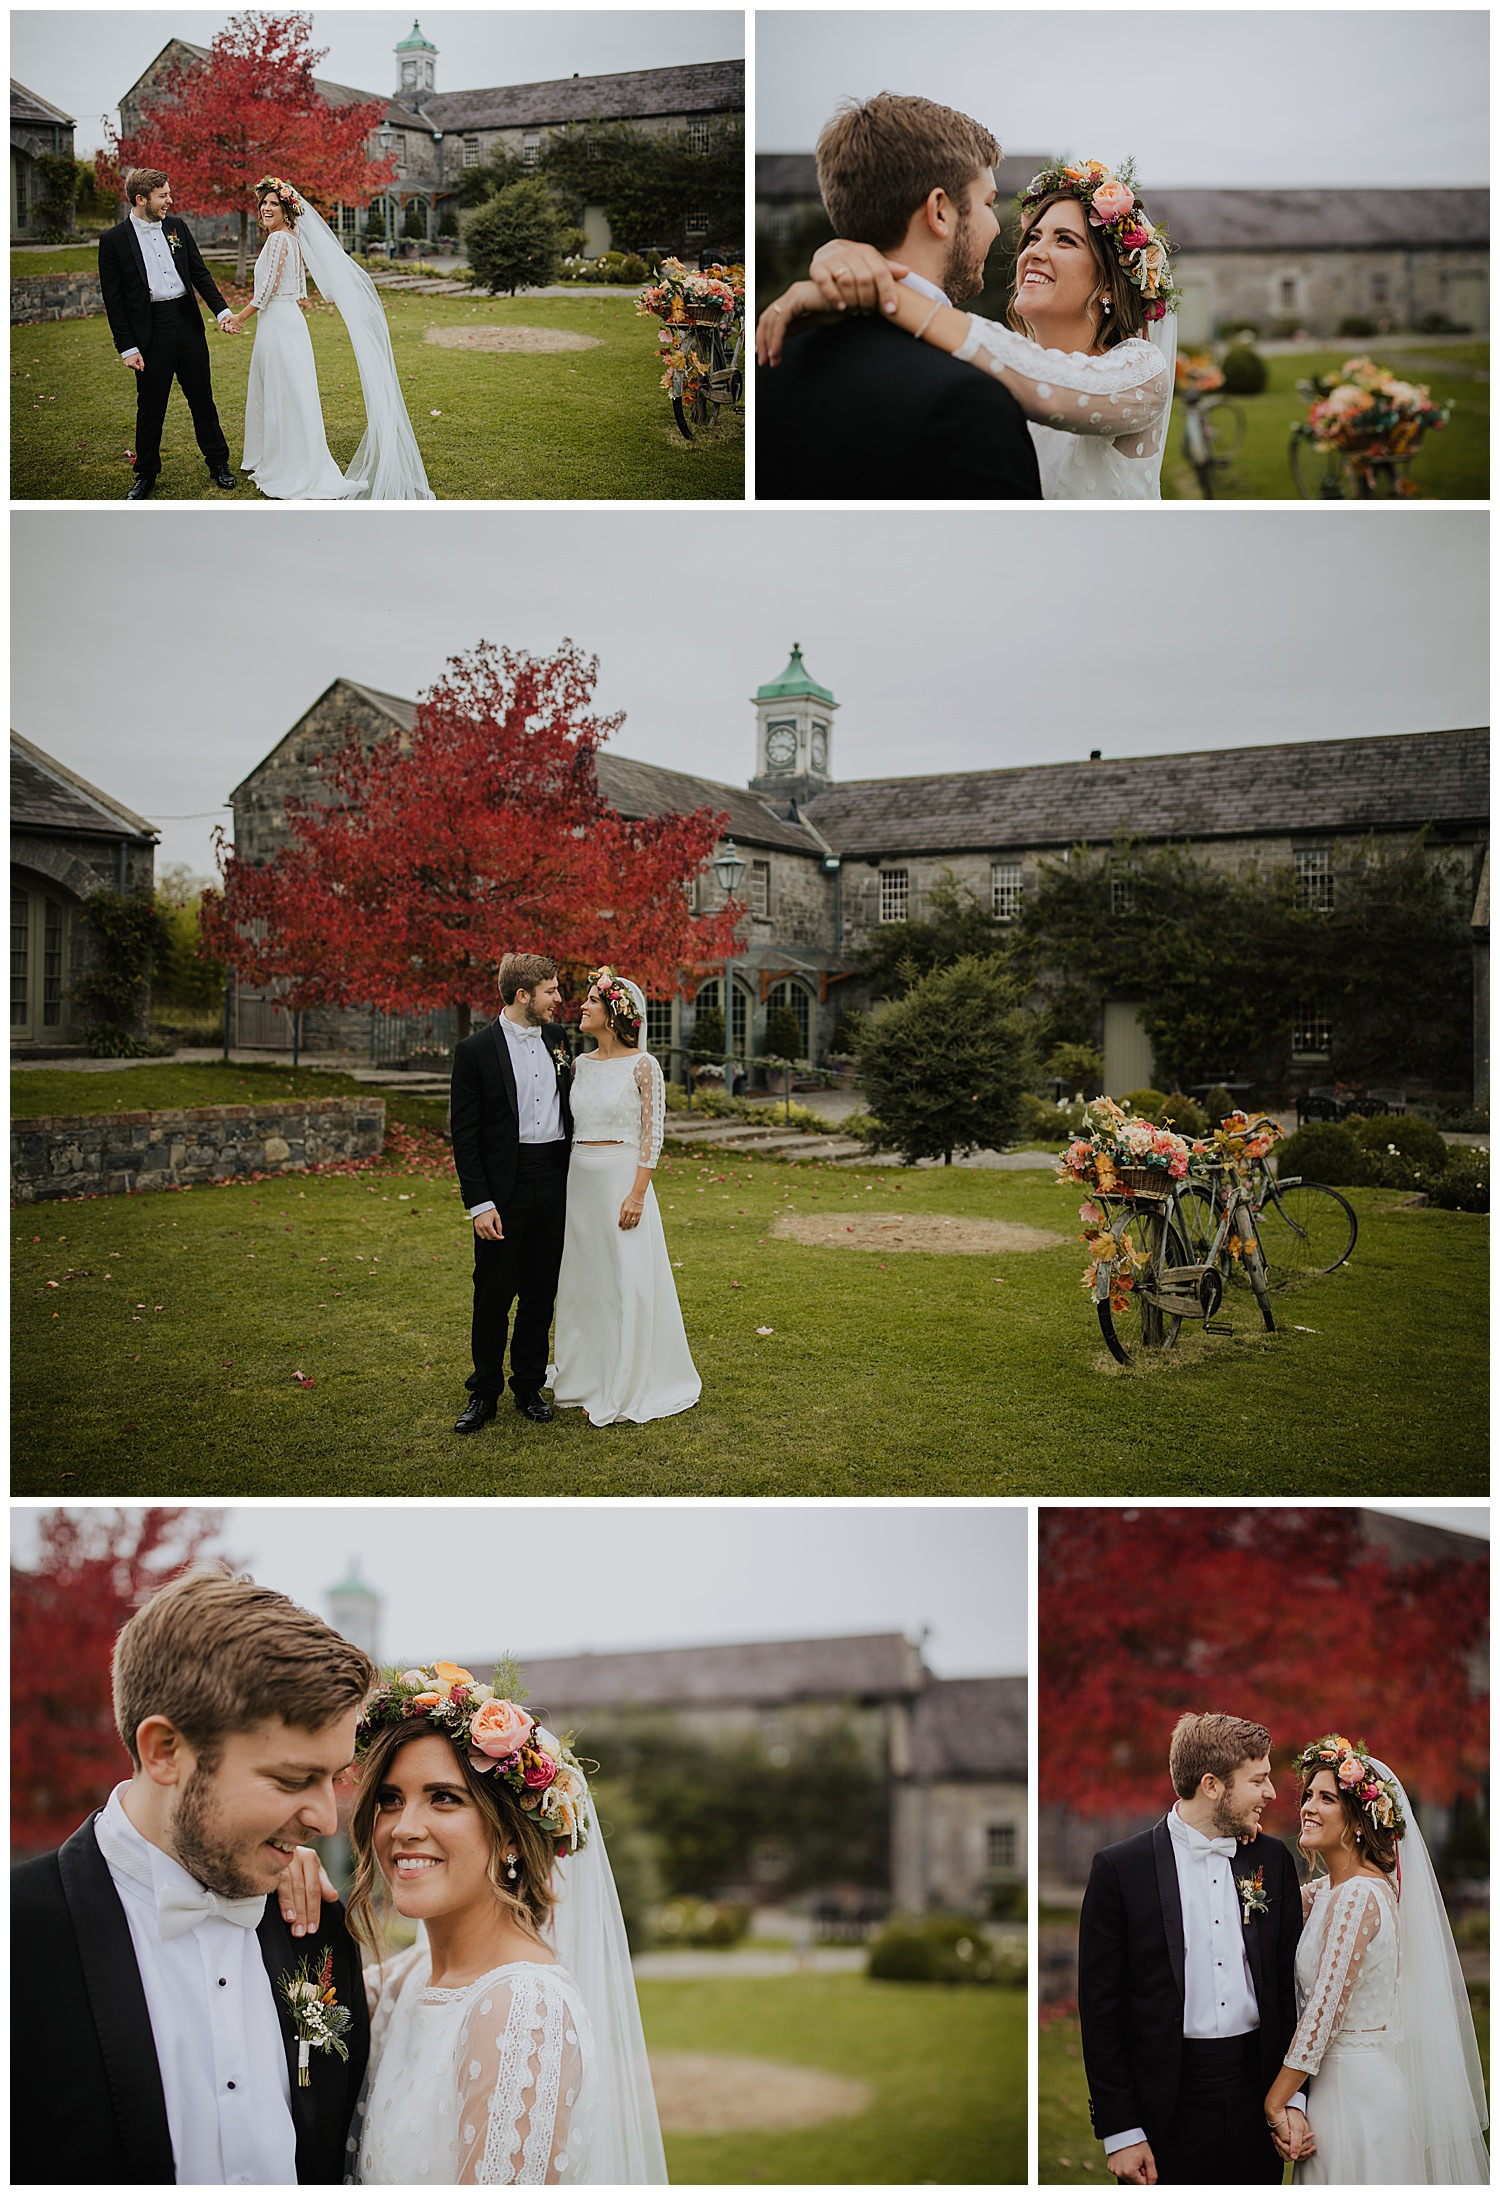 a+s_ballymagarvey_village_wedding_photographer_livia_figueiredo_33.jpg